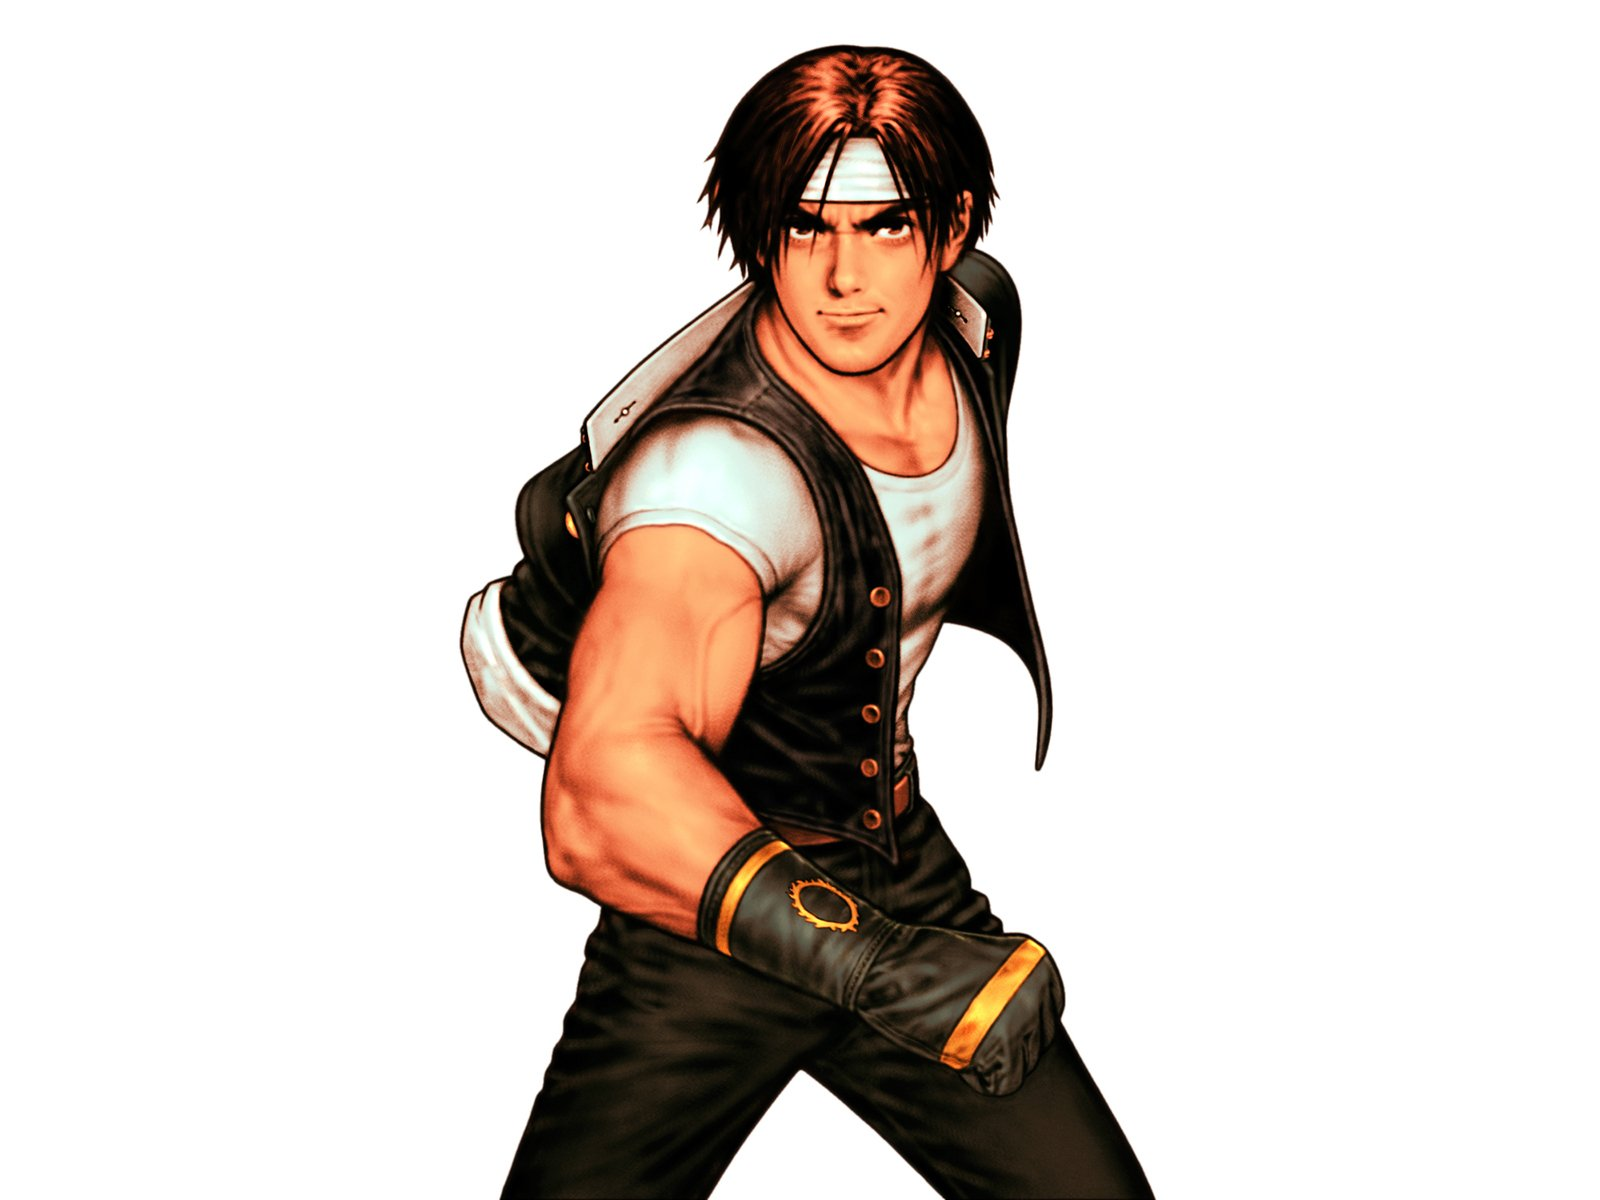 20 King Of Fighters Hd Wallpapers Background Images Wallpaper Images, Photos, Reviews